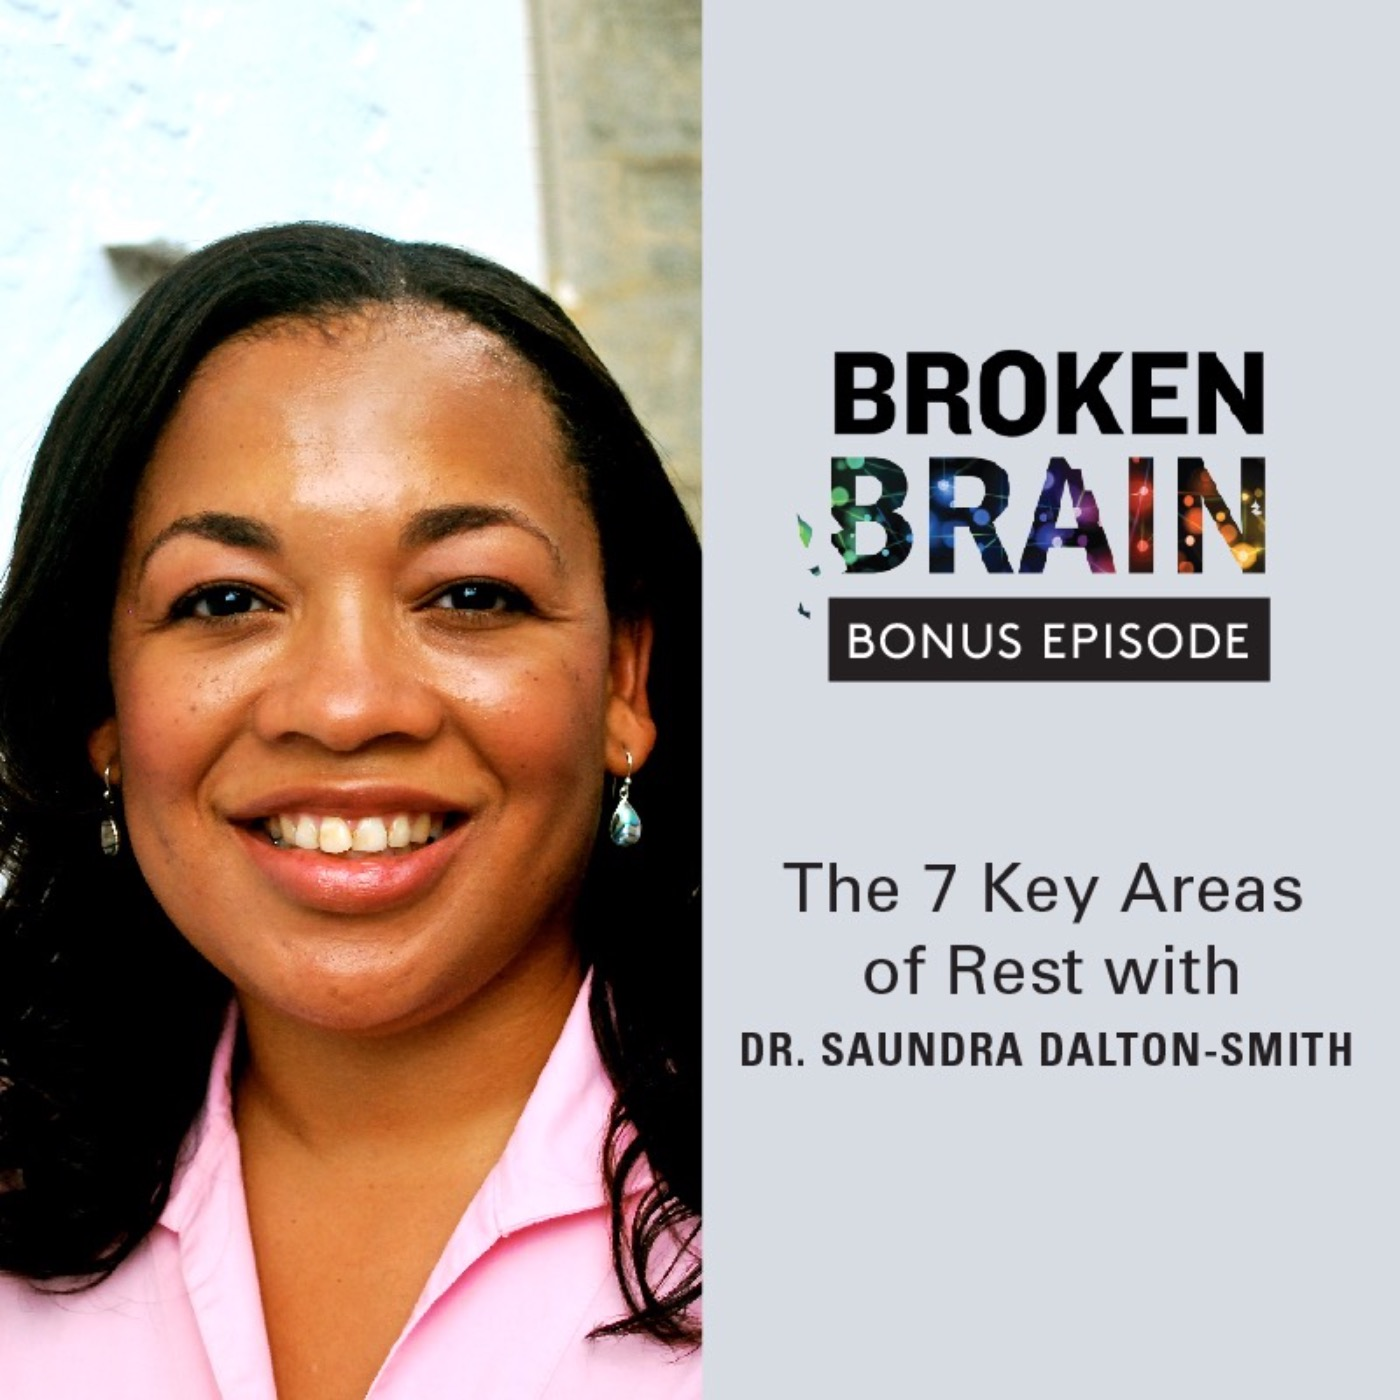 The 7 Key Areas of Rest with Dr. Saundra Dalton-Smith